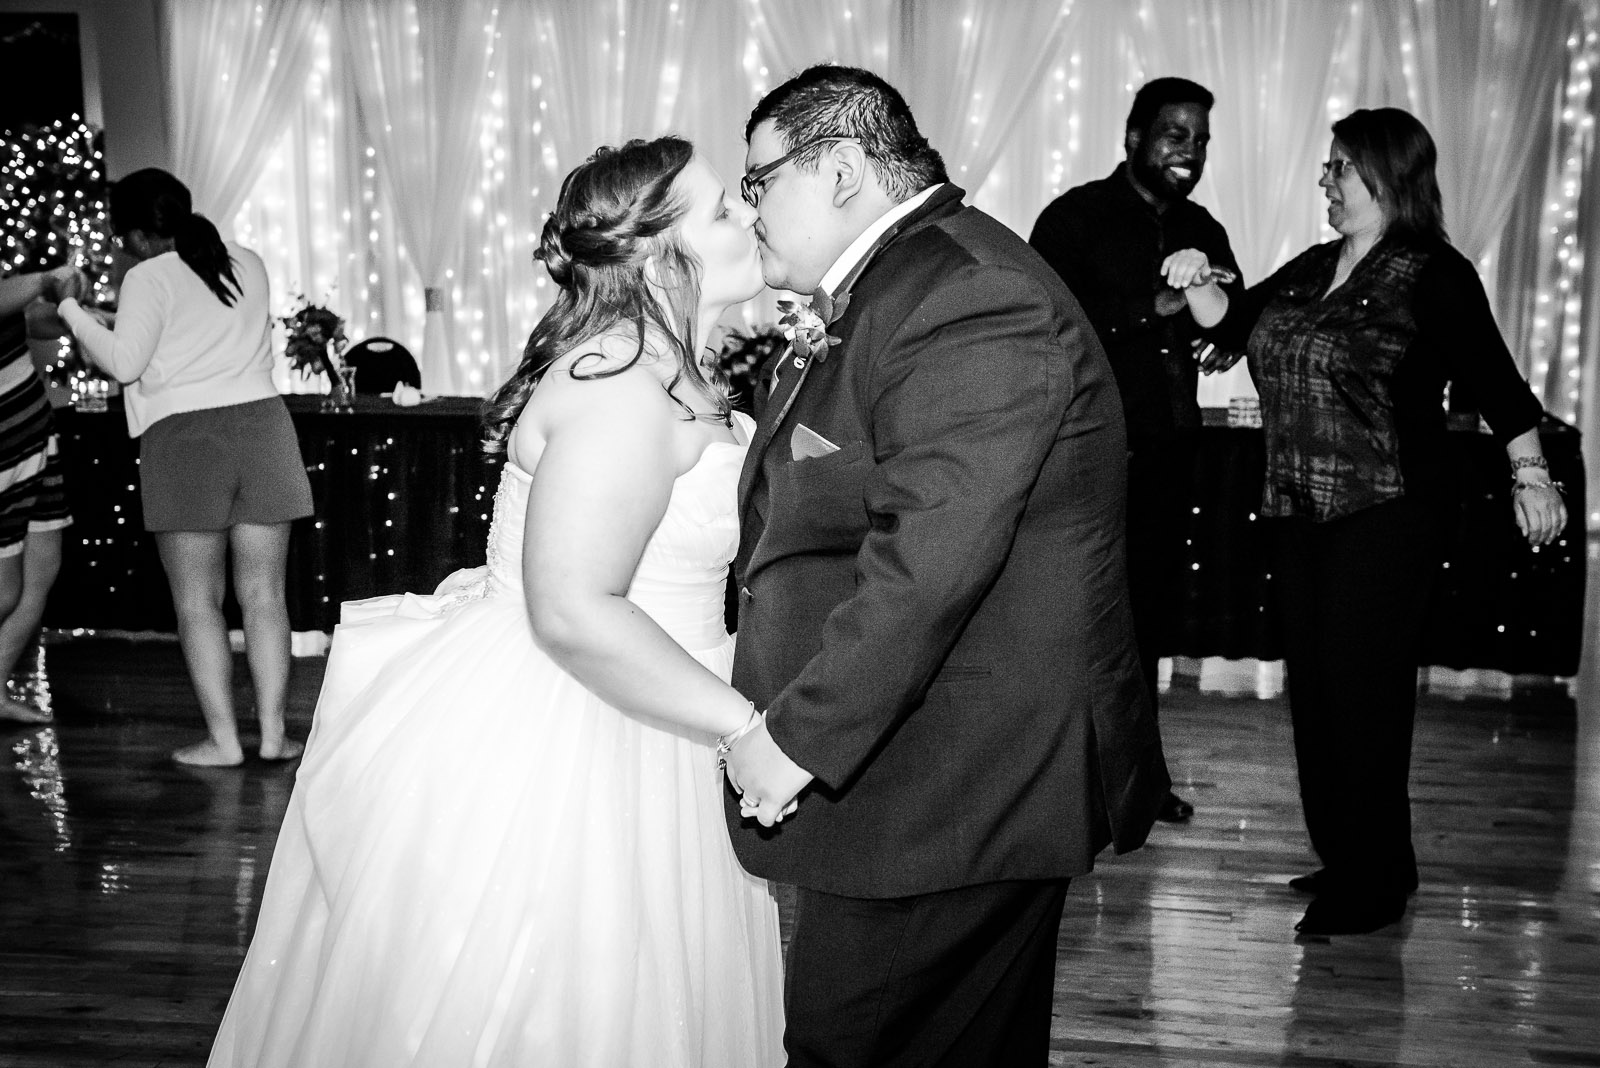 Eric_and_Christy_Photography_Blog_Shelby_Dony_Wedding-51